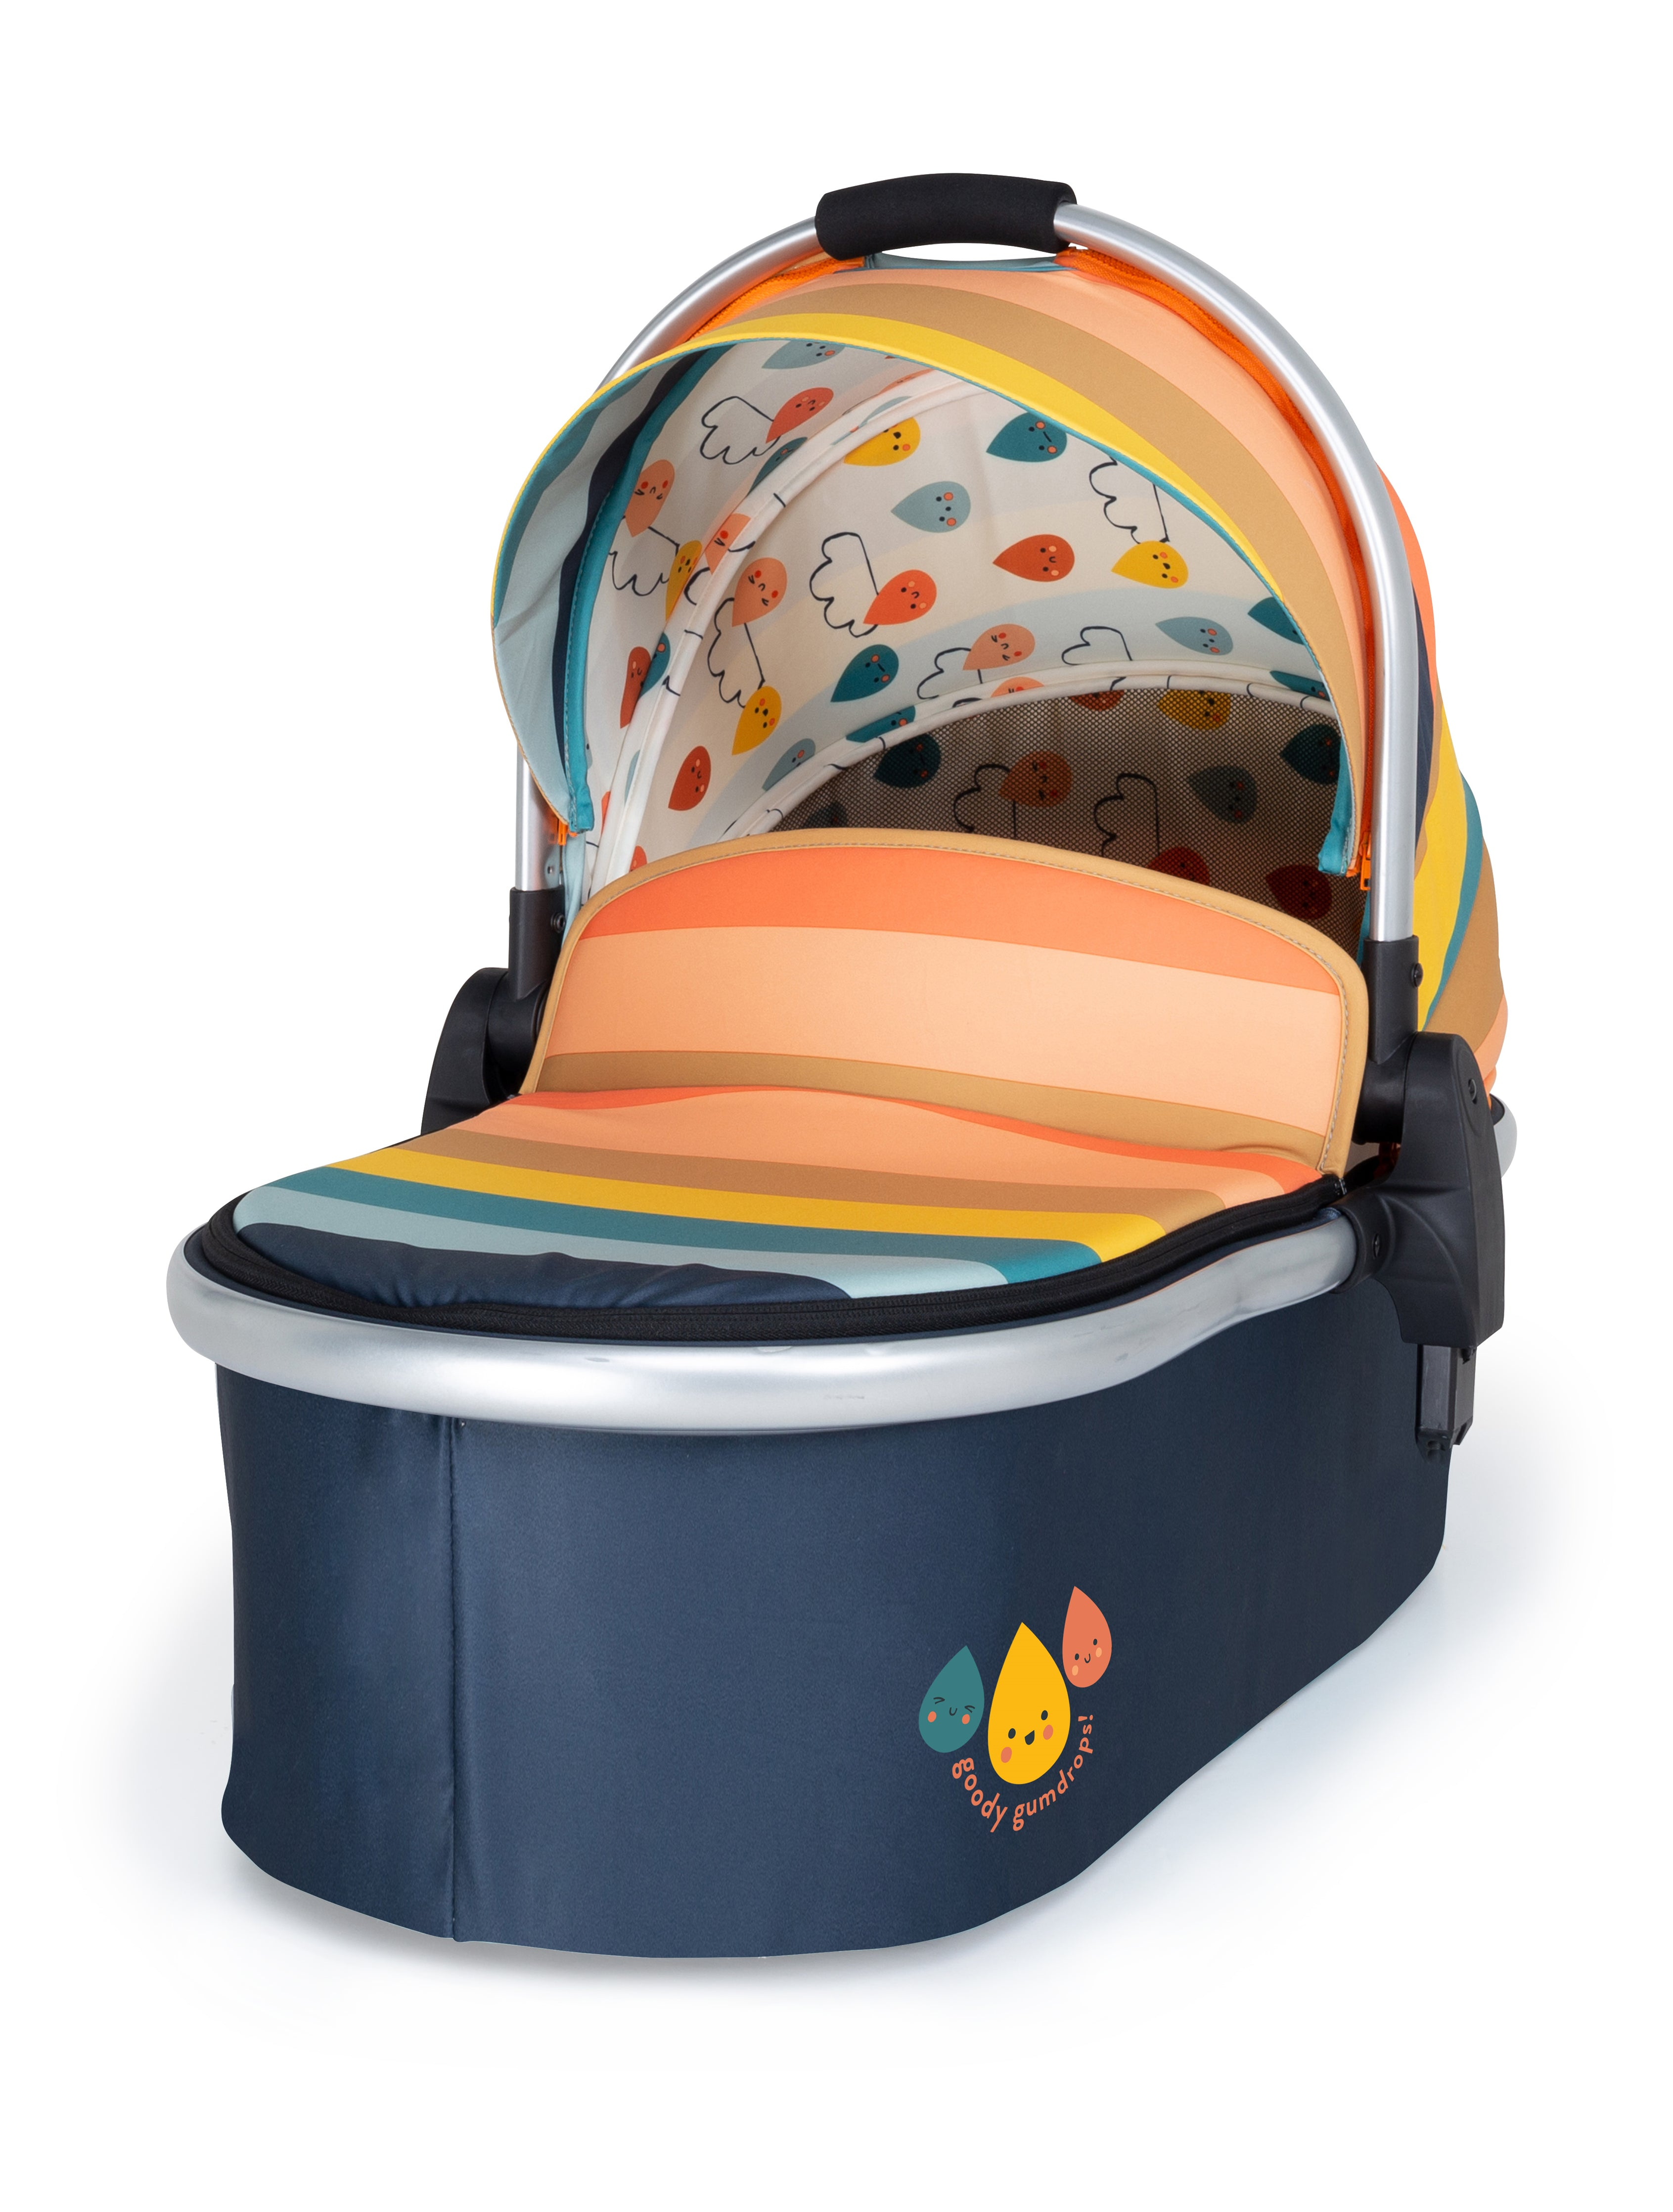 Wowee Carrycot Goody Gumdrops